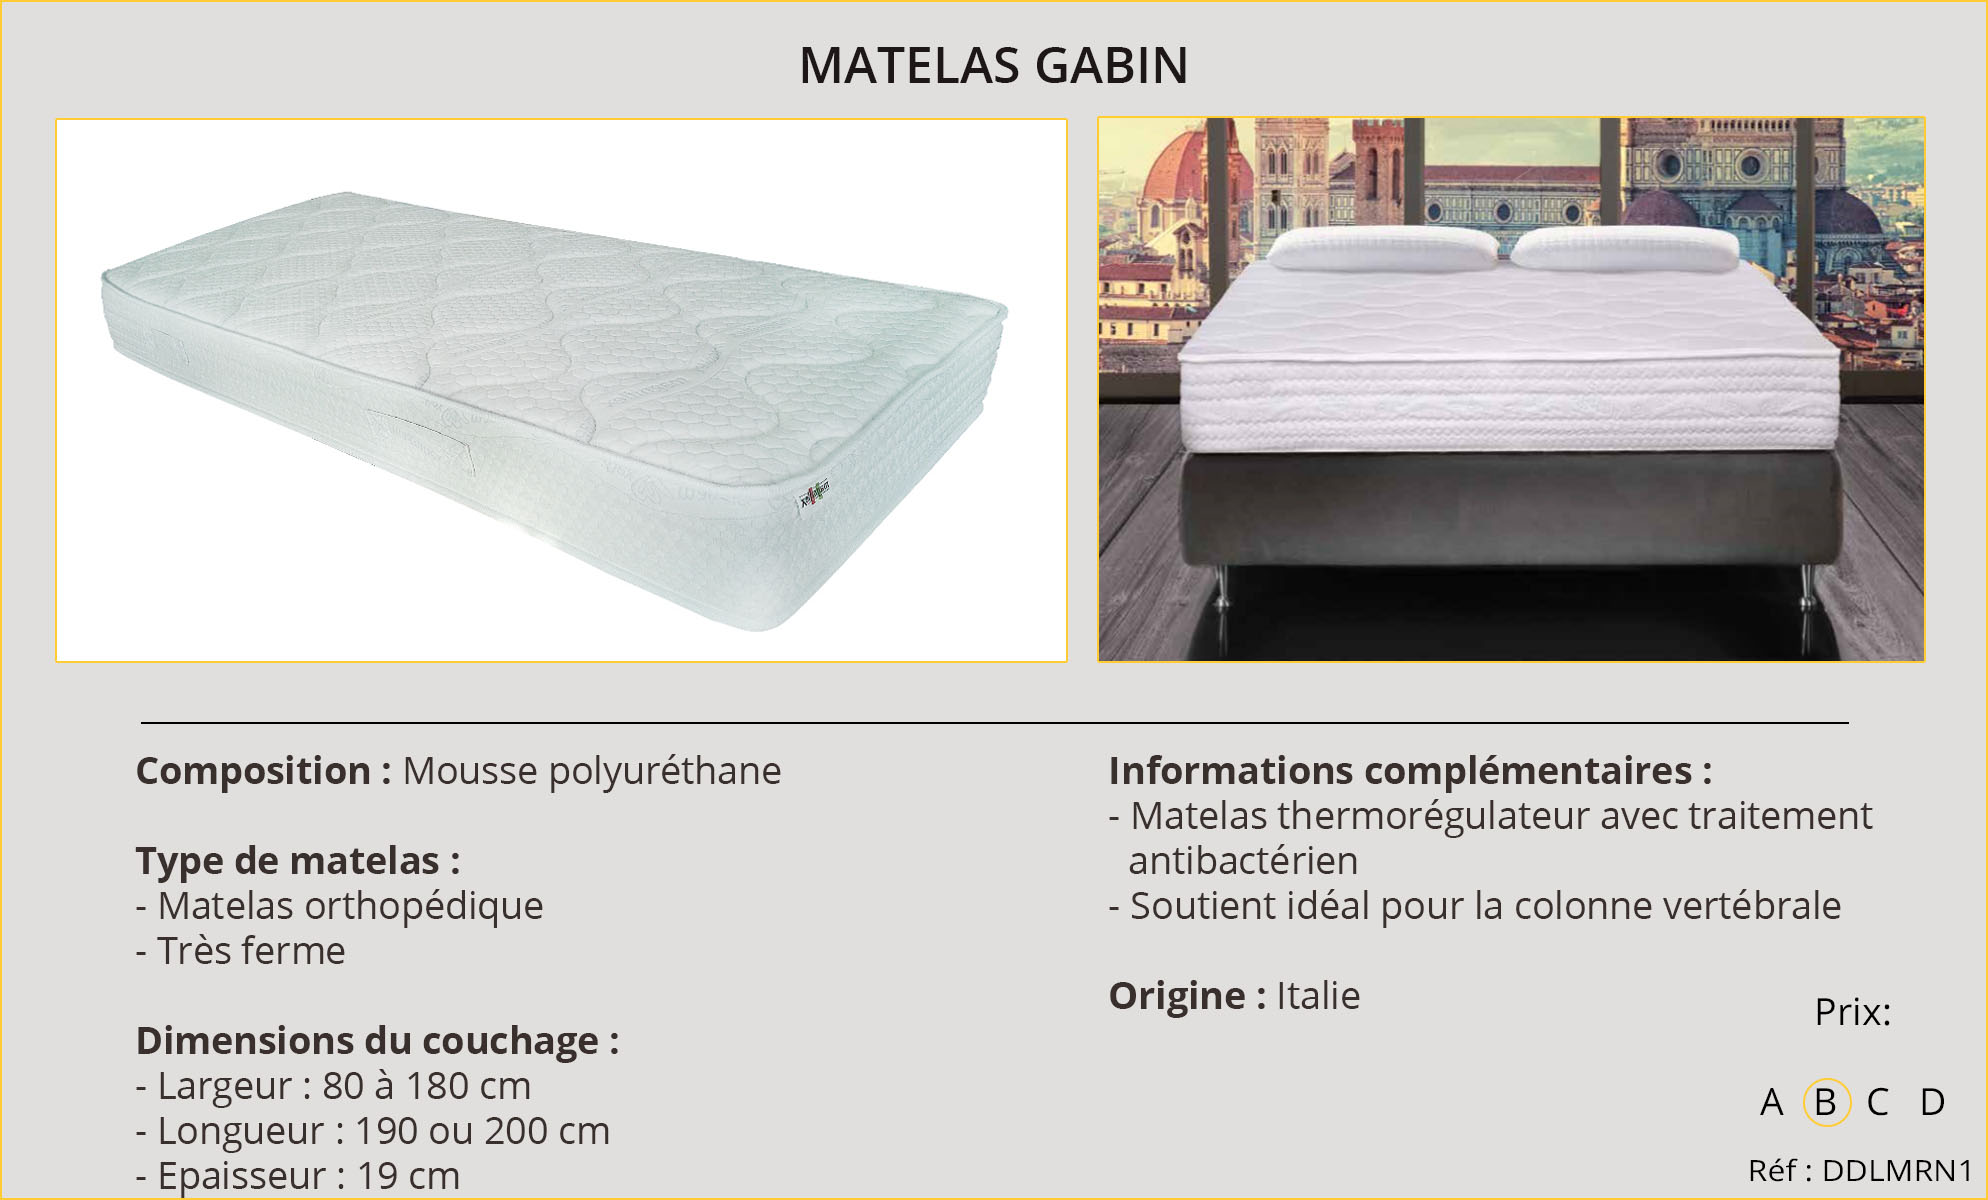 literie renaud andr renault fabrication matelas sommier andr renault fabrication matelas. Black Bedroom Furniture Sets. Home Design Ideas